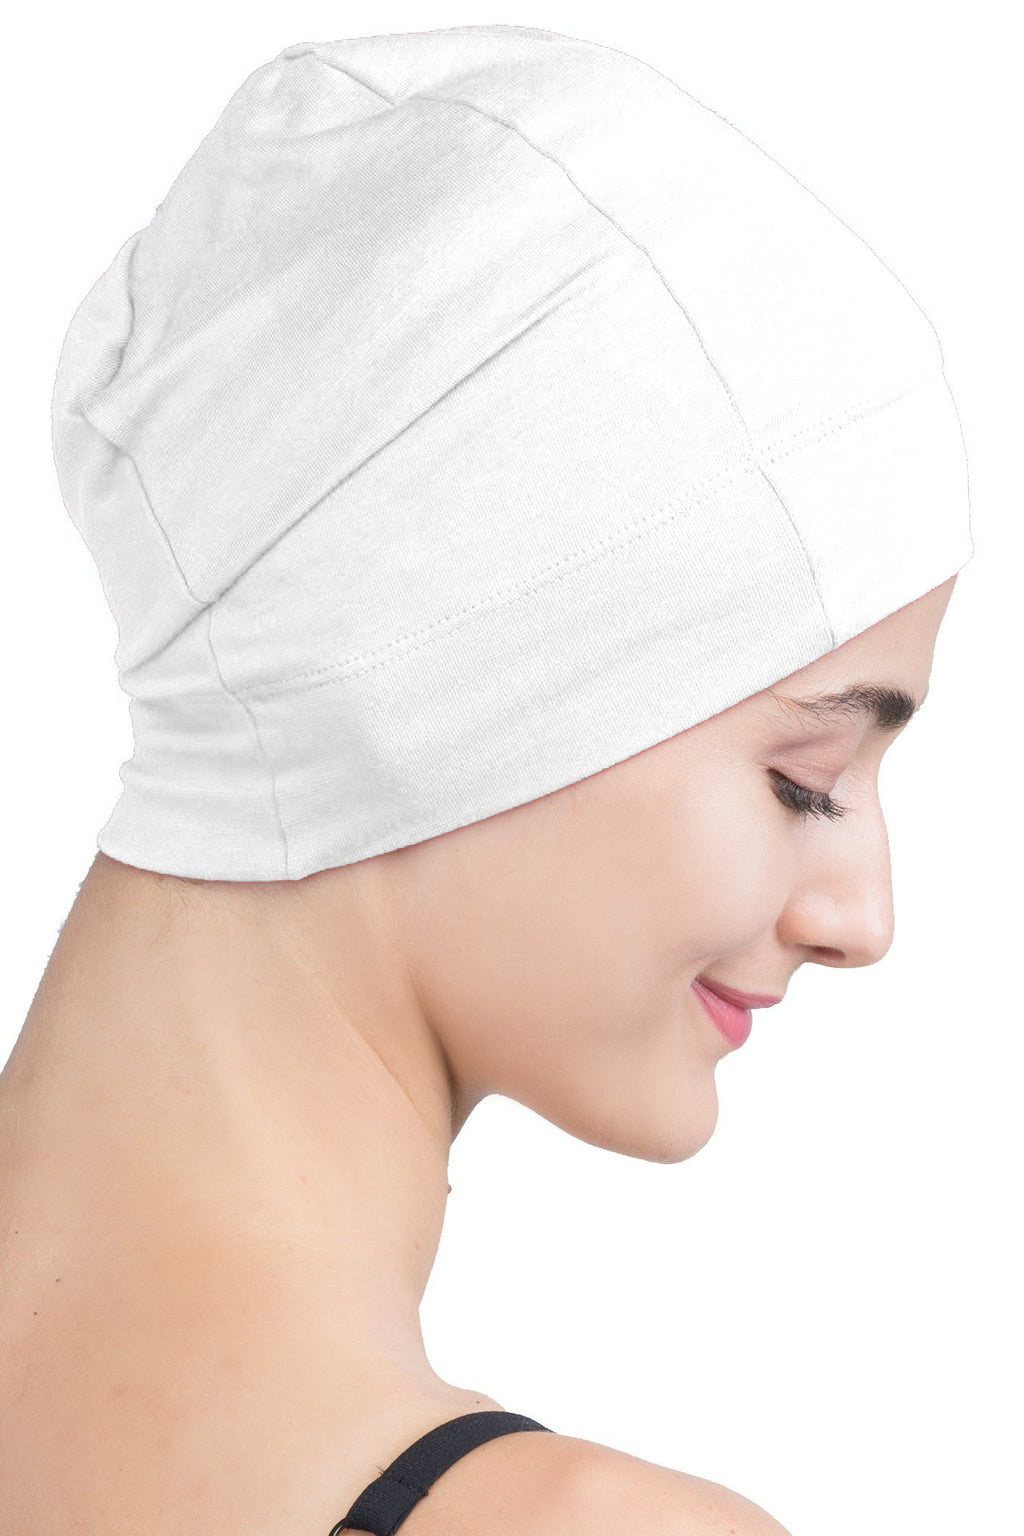 Snug Fit Sleep Cap - Cream